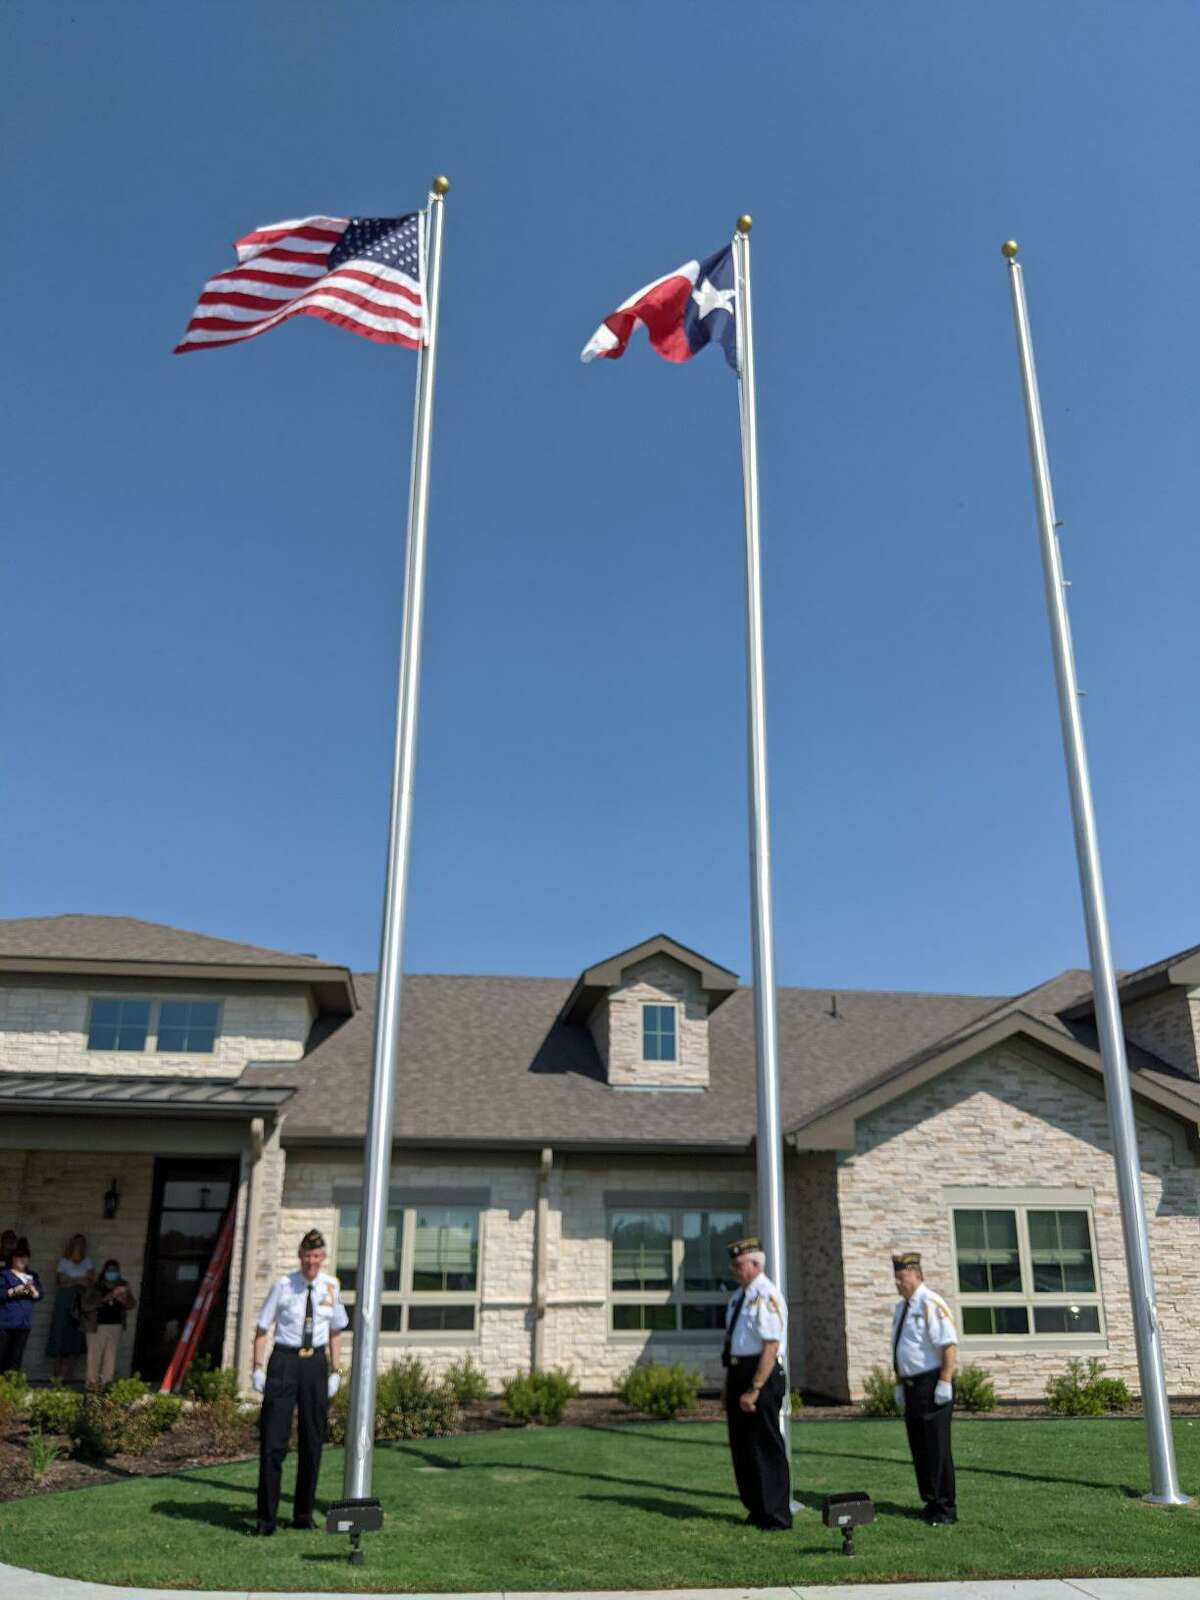 The opening festivities for the Village as Sugar Land included a posting of the colors from members of the Katy VFW Post 9182 and American Legion Post 164. Shown here are Jose Rodriguez, Jeb Strickland, Rico Spacek, Ted Custer, Jose Nicto and Jim Scoggin.